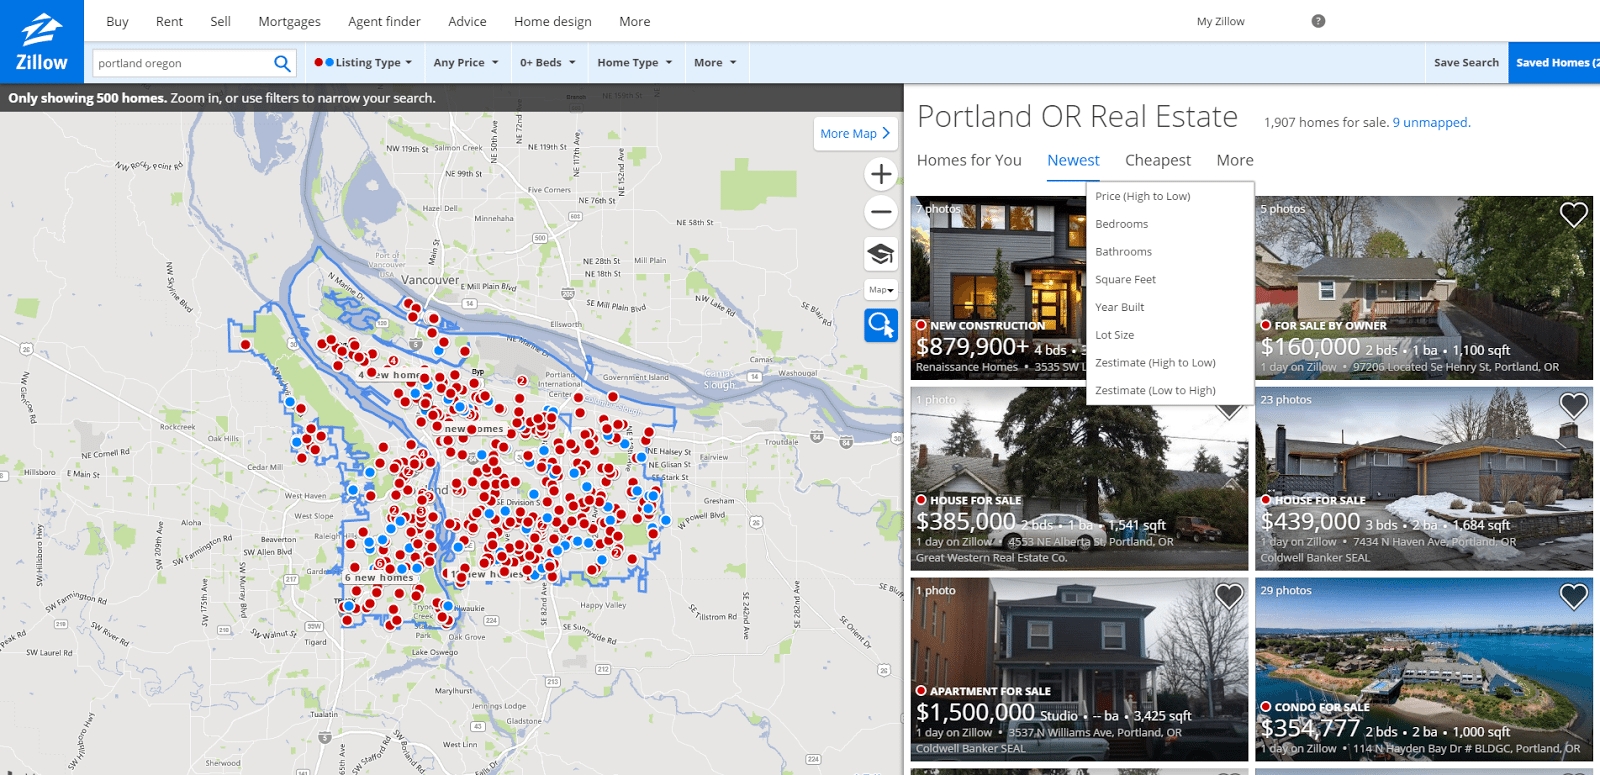 zillow interface